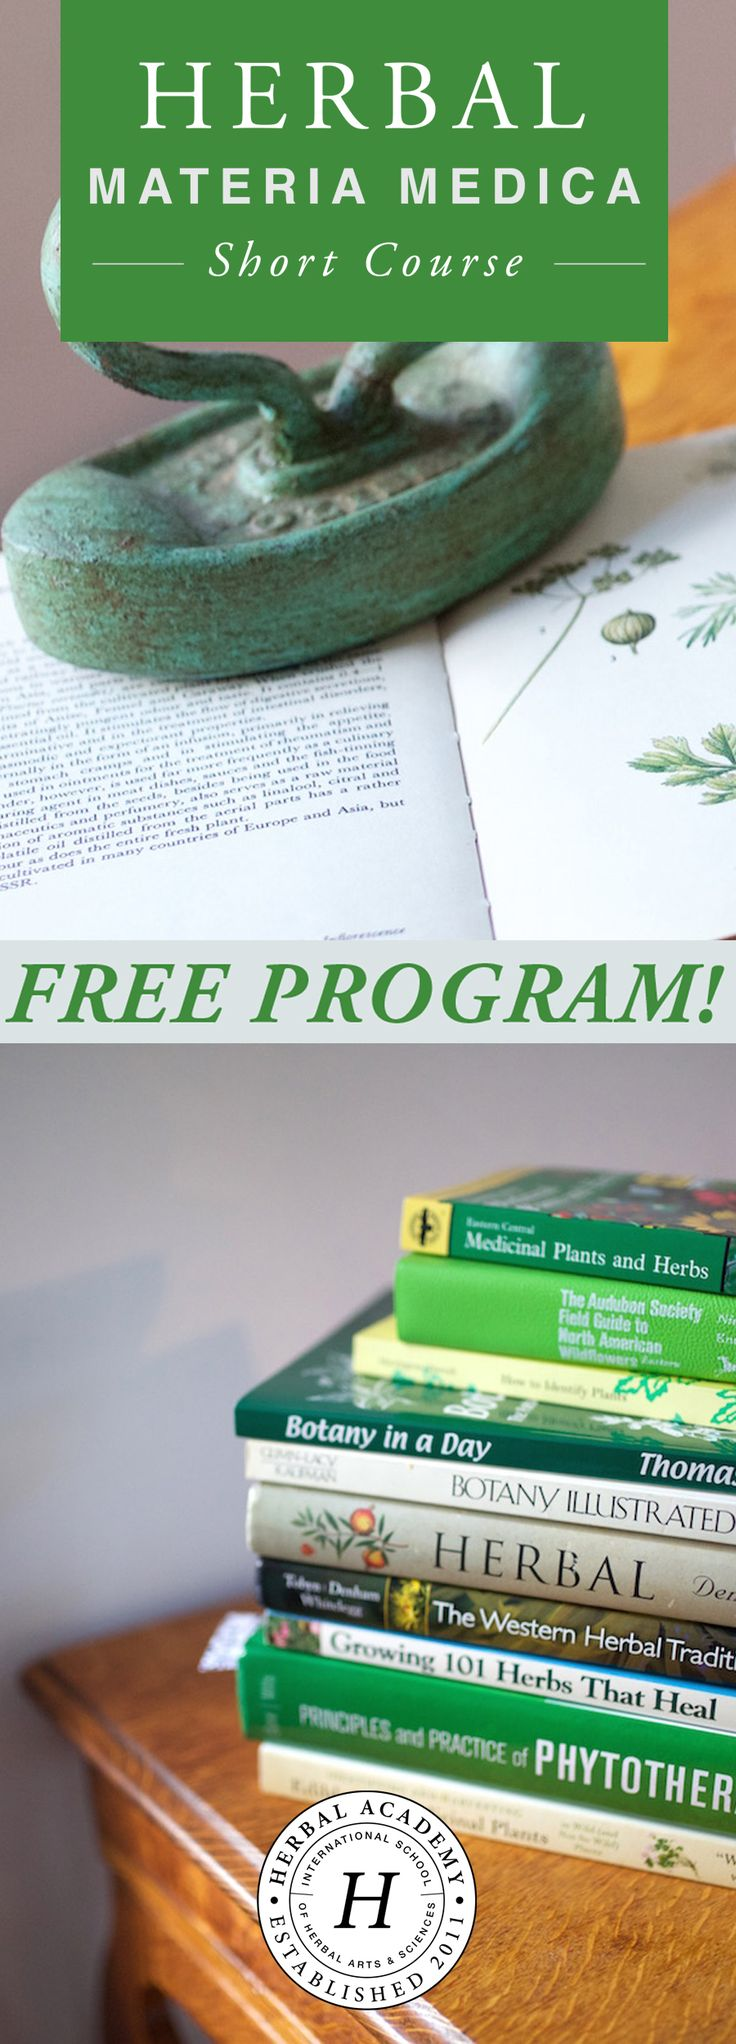 Tell The Story Of Your Plant With This Brand New Free Course From The  Herbal Academy